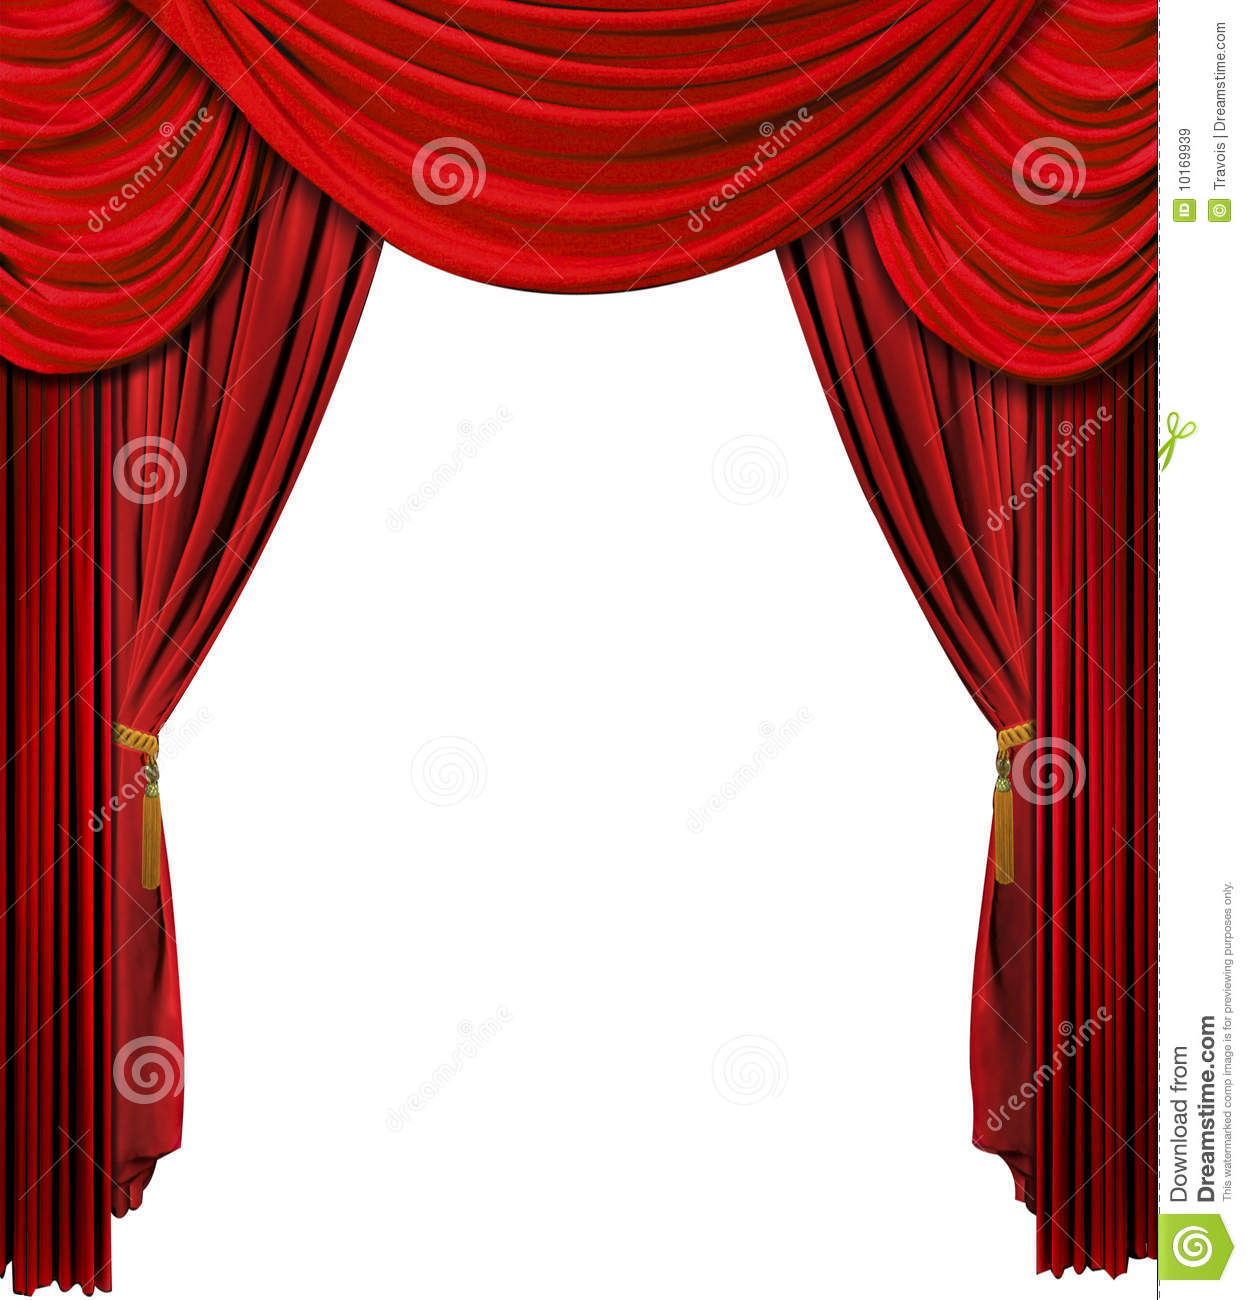 red theater curtain clipart #12